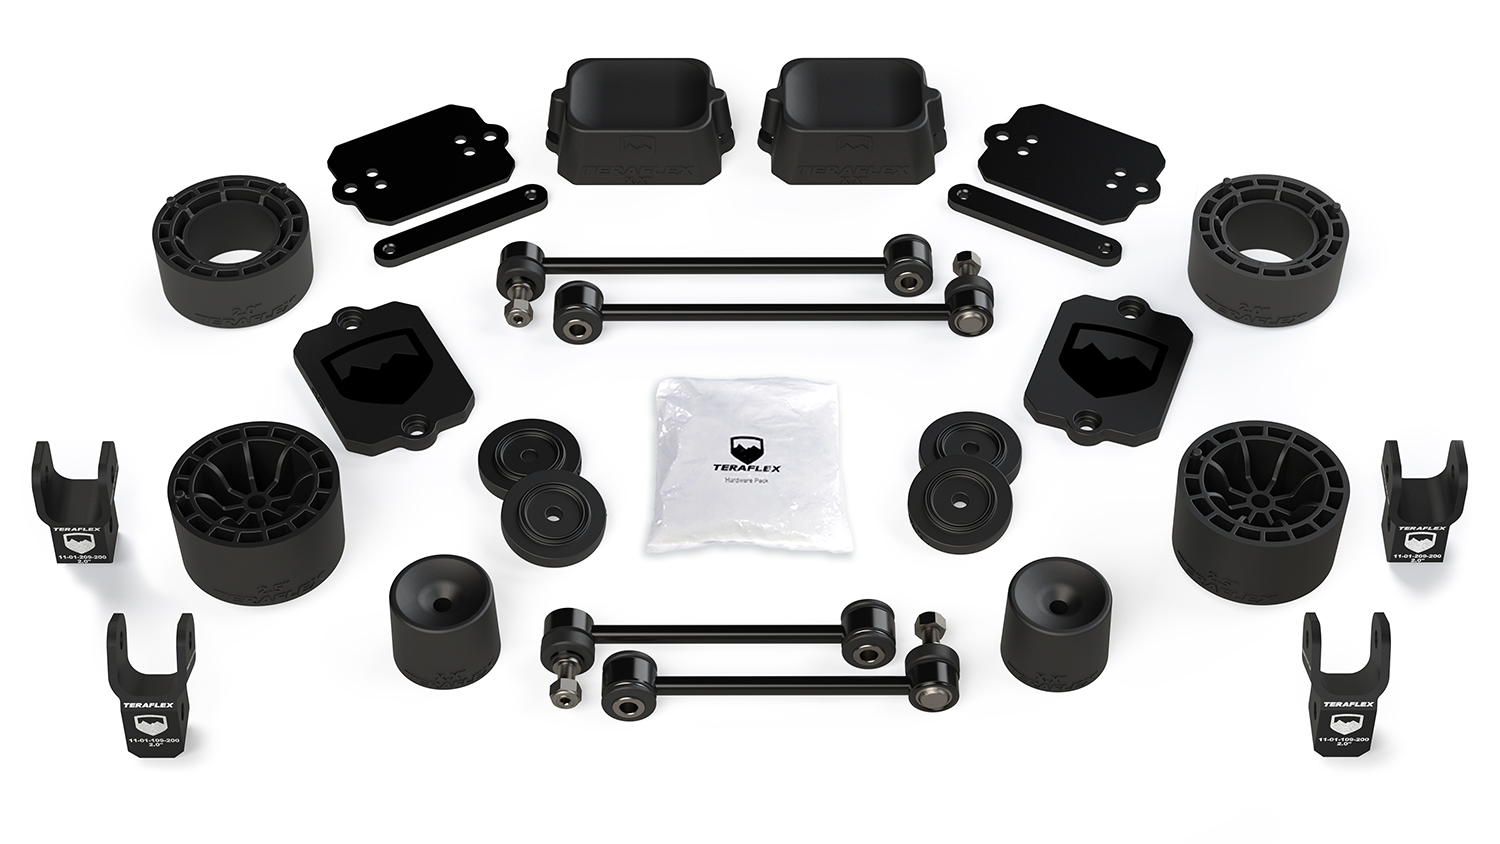 Teraflex 2.5in Performance Spacer Lift Kit w/Shock Extensions - JL 2Dr Sport/Sahara Only